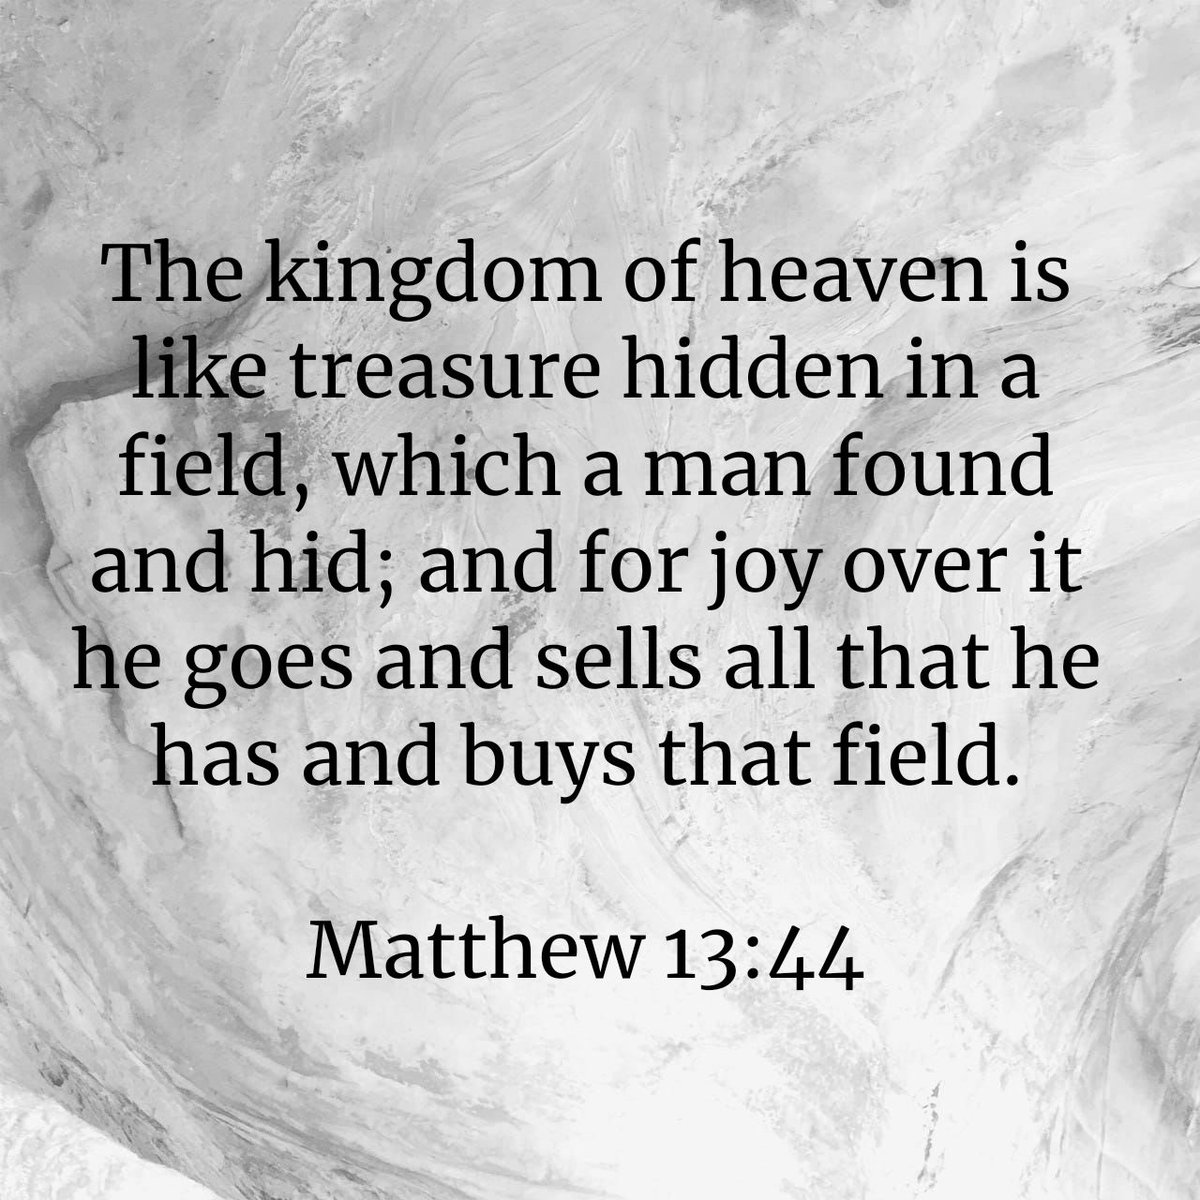 """Again, the kingdom of heaven is like treasure hidden in a field, which a man found and hid; and for joy over it he goes and sells all that he has and buys that field. Matthew 13:44 NKJV  https://t.co/SL5JCQ7gq8 https://t.co/VurS88YDsM"